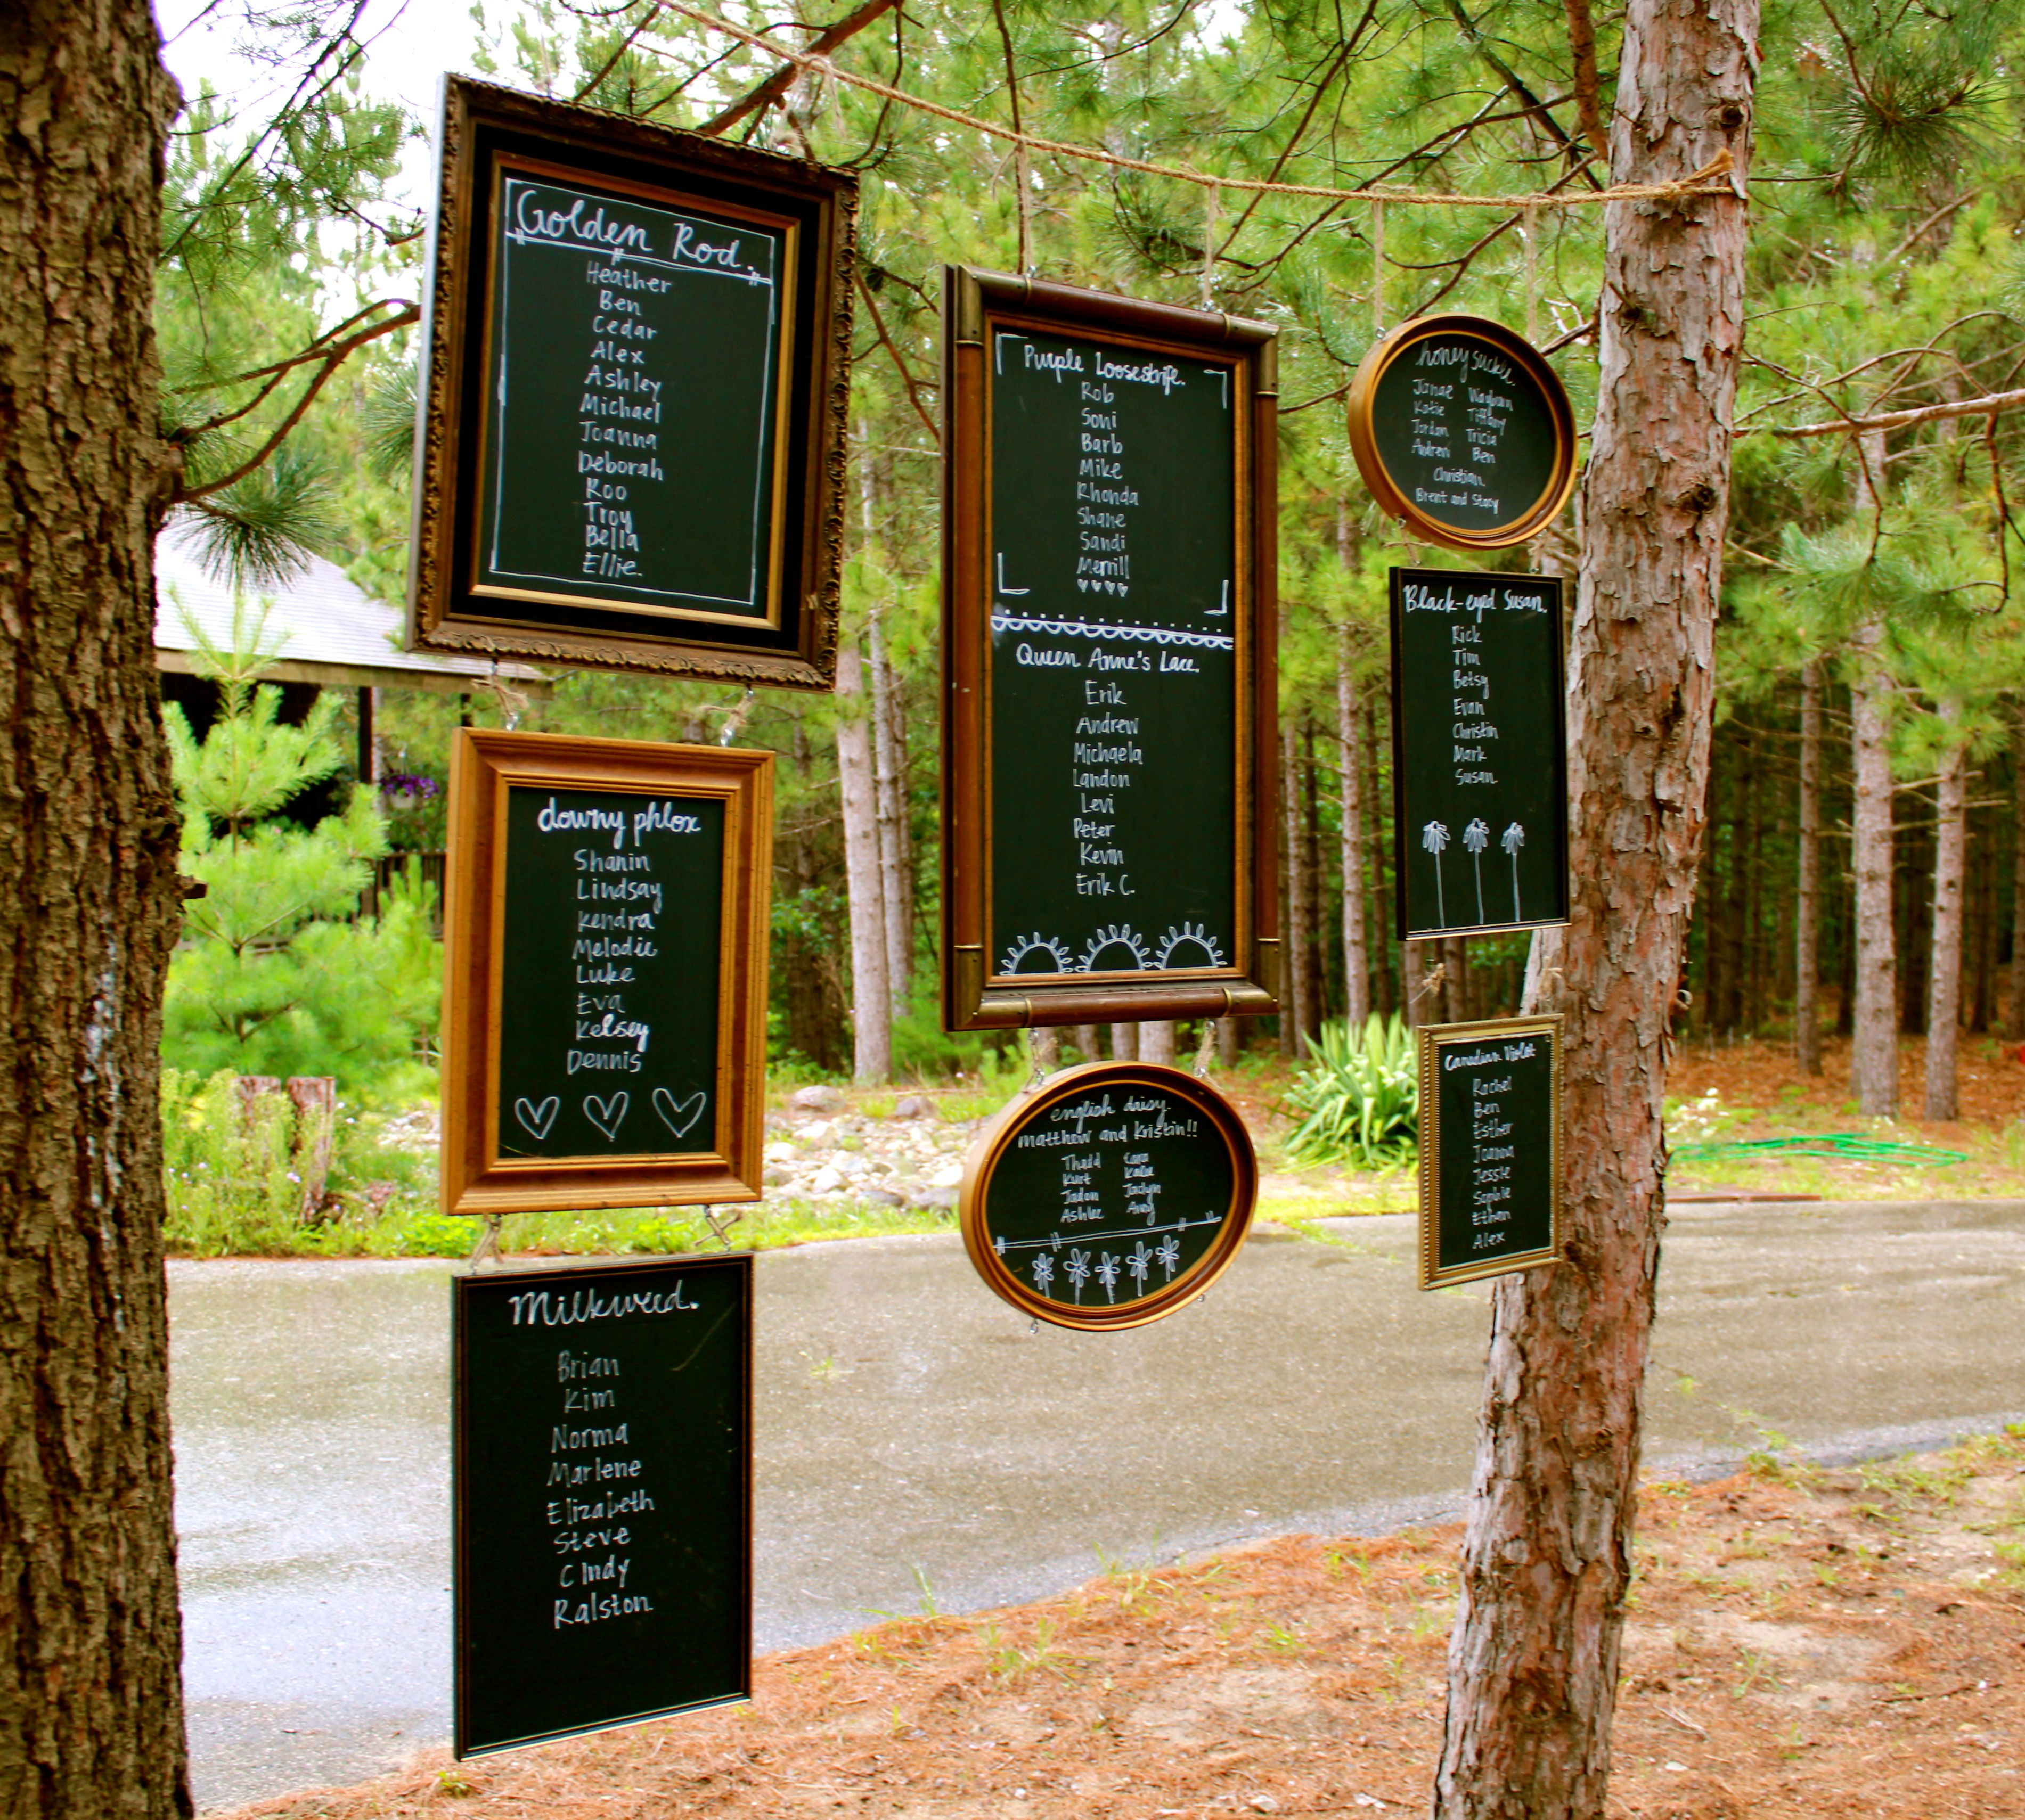 Outdoor Wedding Picture Ideas: 32 Totally Ingenious Ideas For An Outdoor Wedding